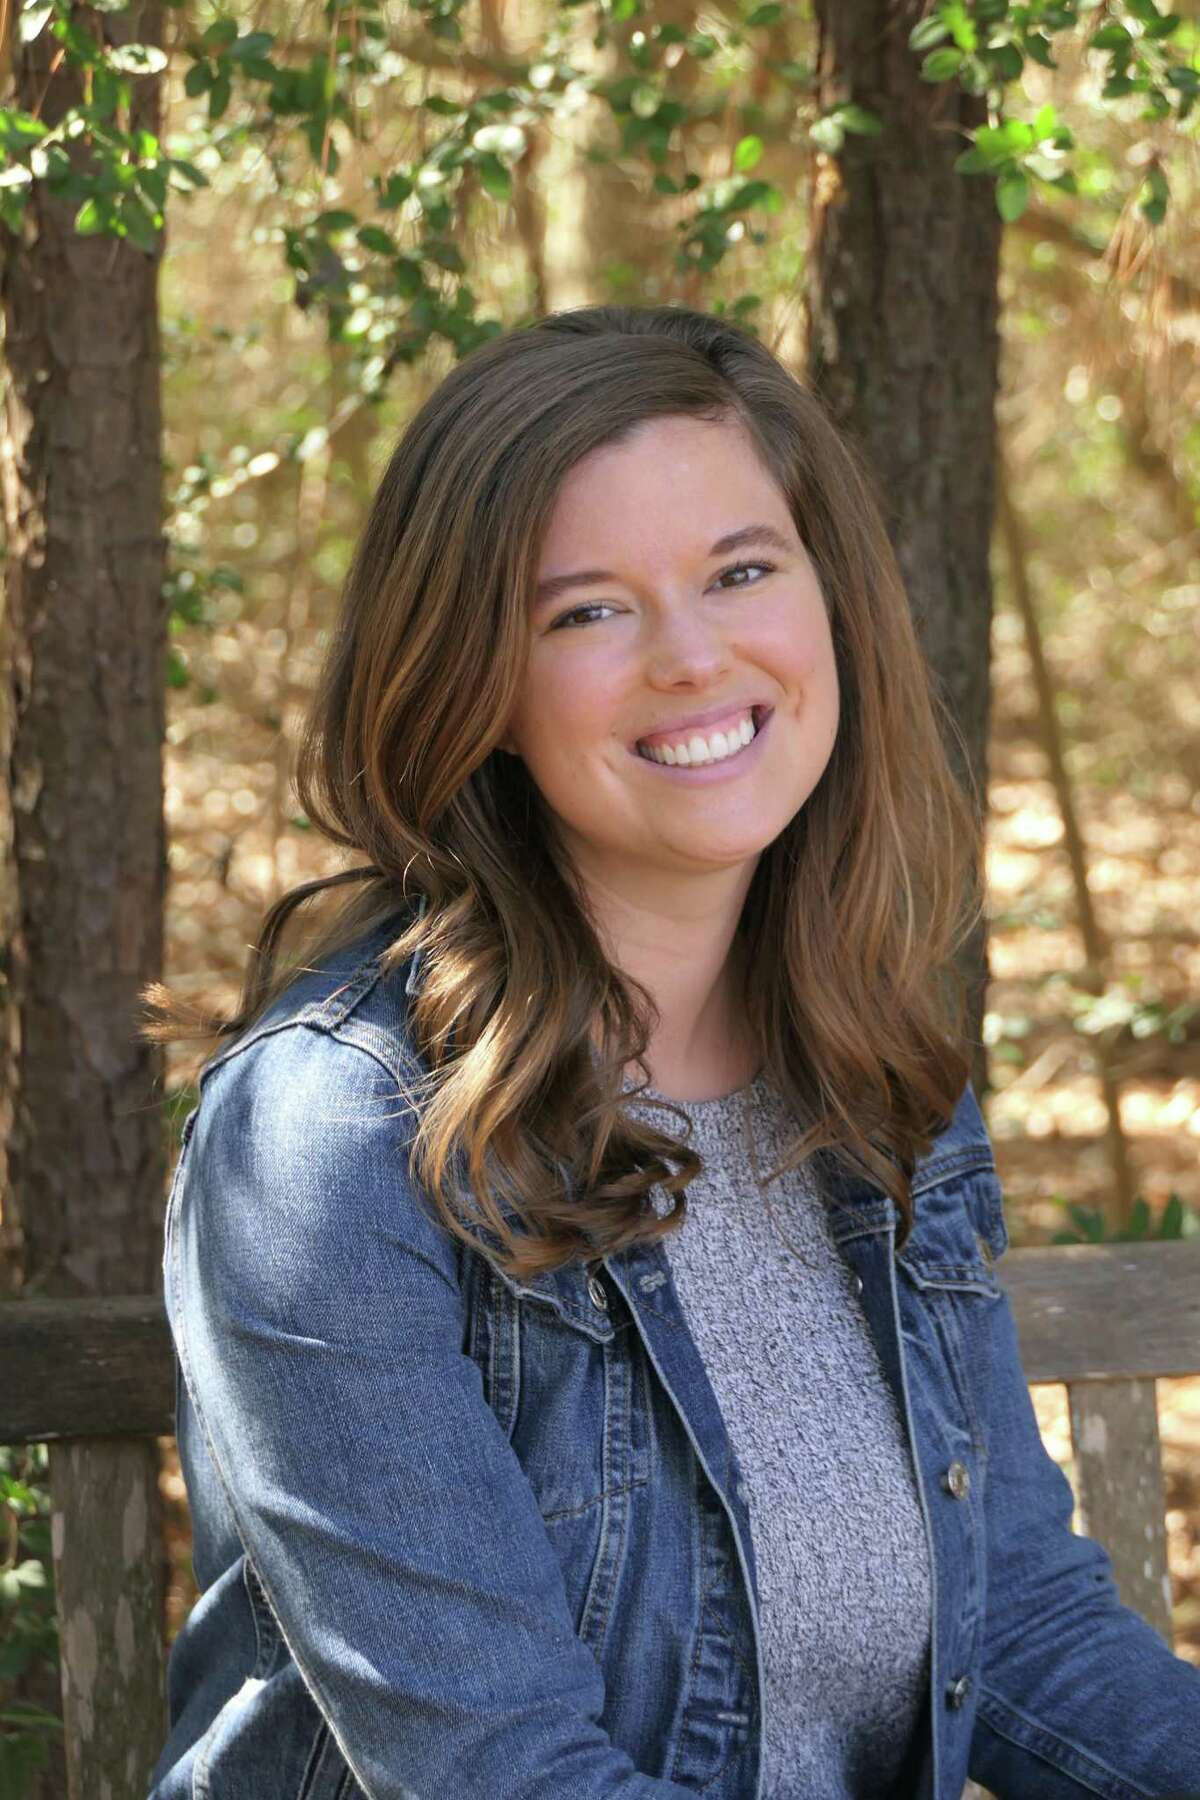 Katie Campbell has been promoted to Director of Operations and Special Events